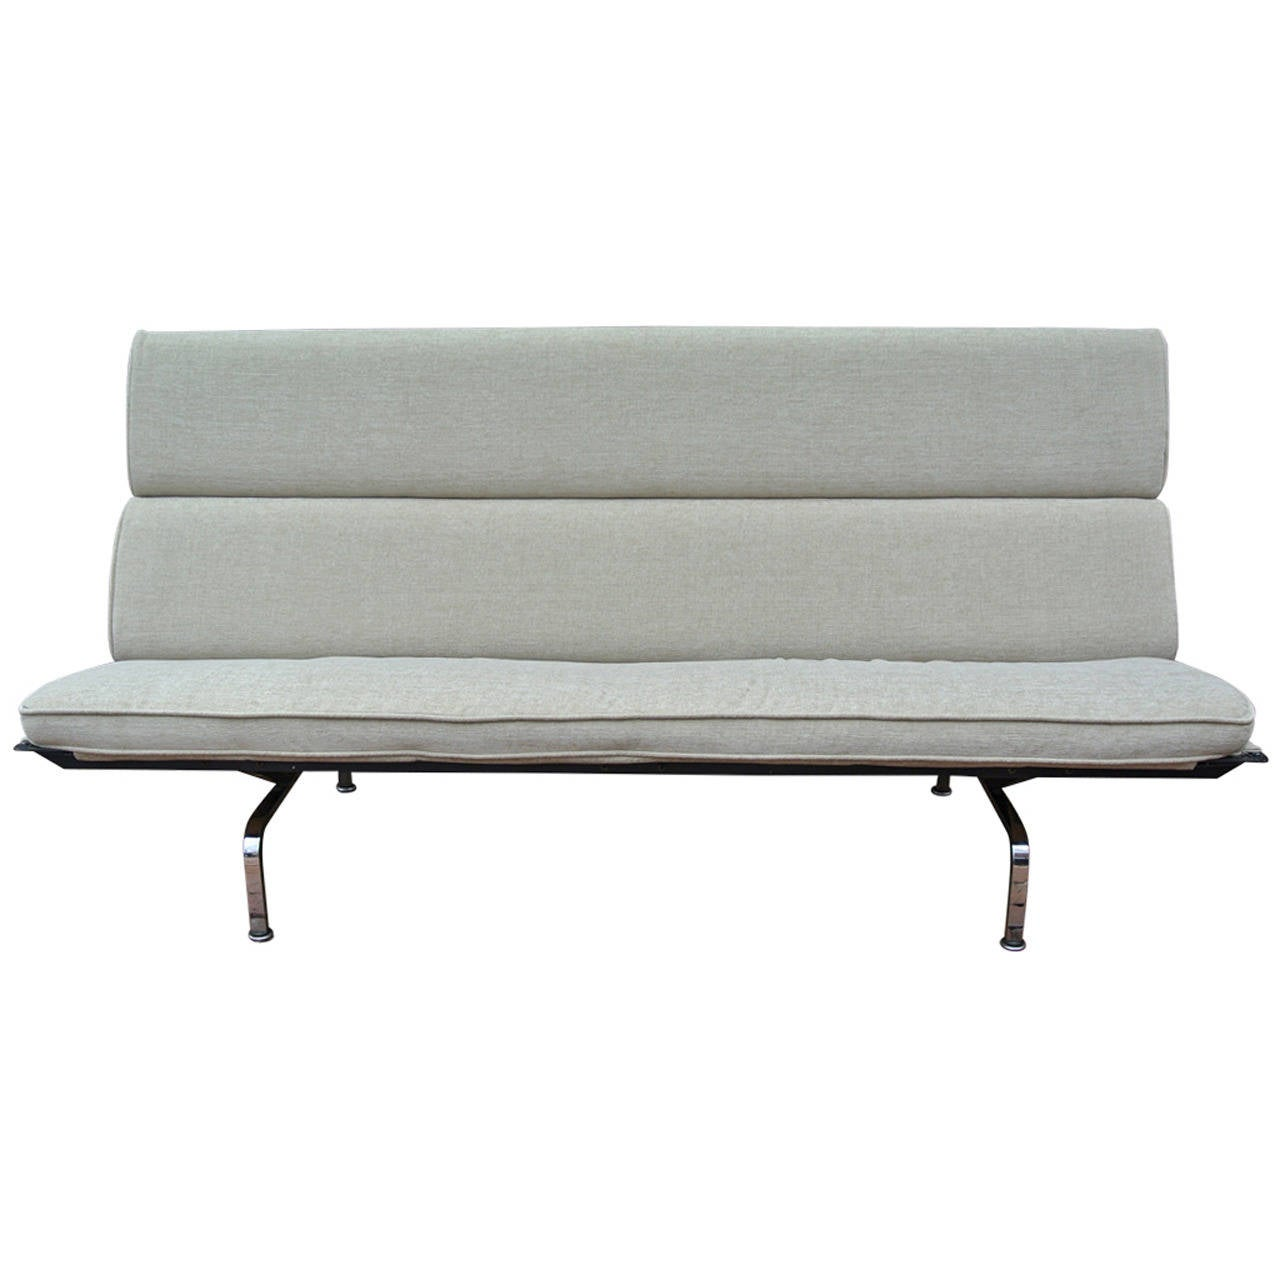 eames sofa compact furniture of america mazri 2 piece bonded leather and loveseat set early by herman miller for sale at 1stdibs charles